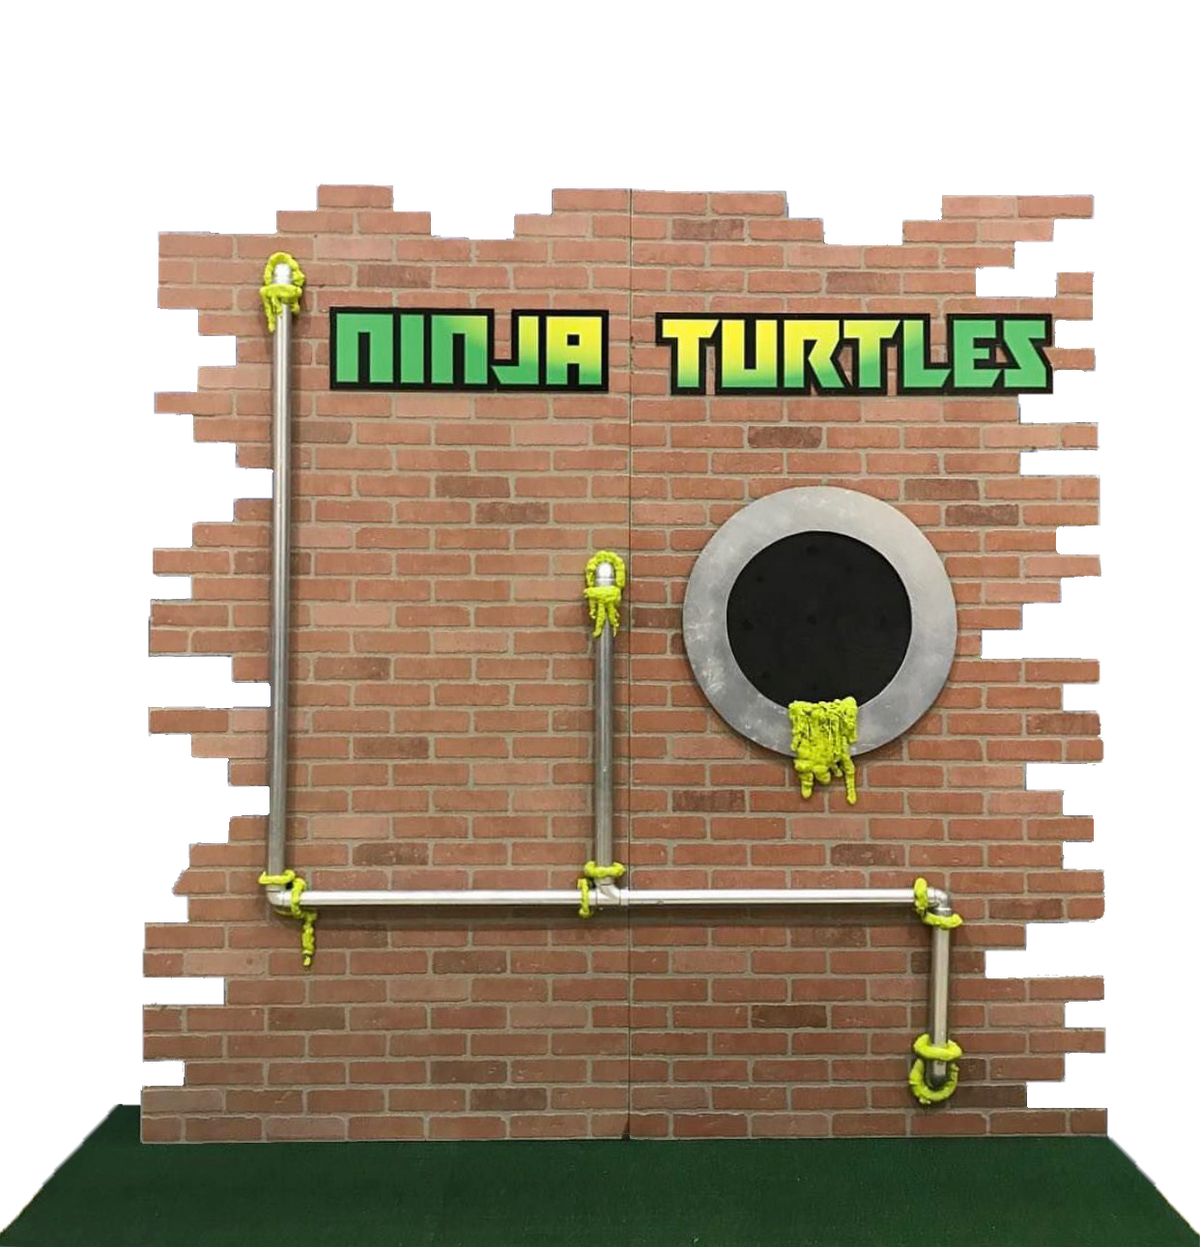 Ninja Turtles Backdrop Panels